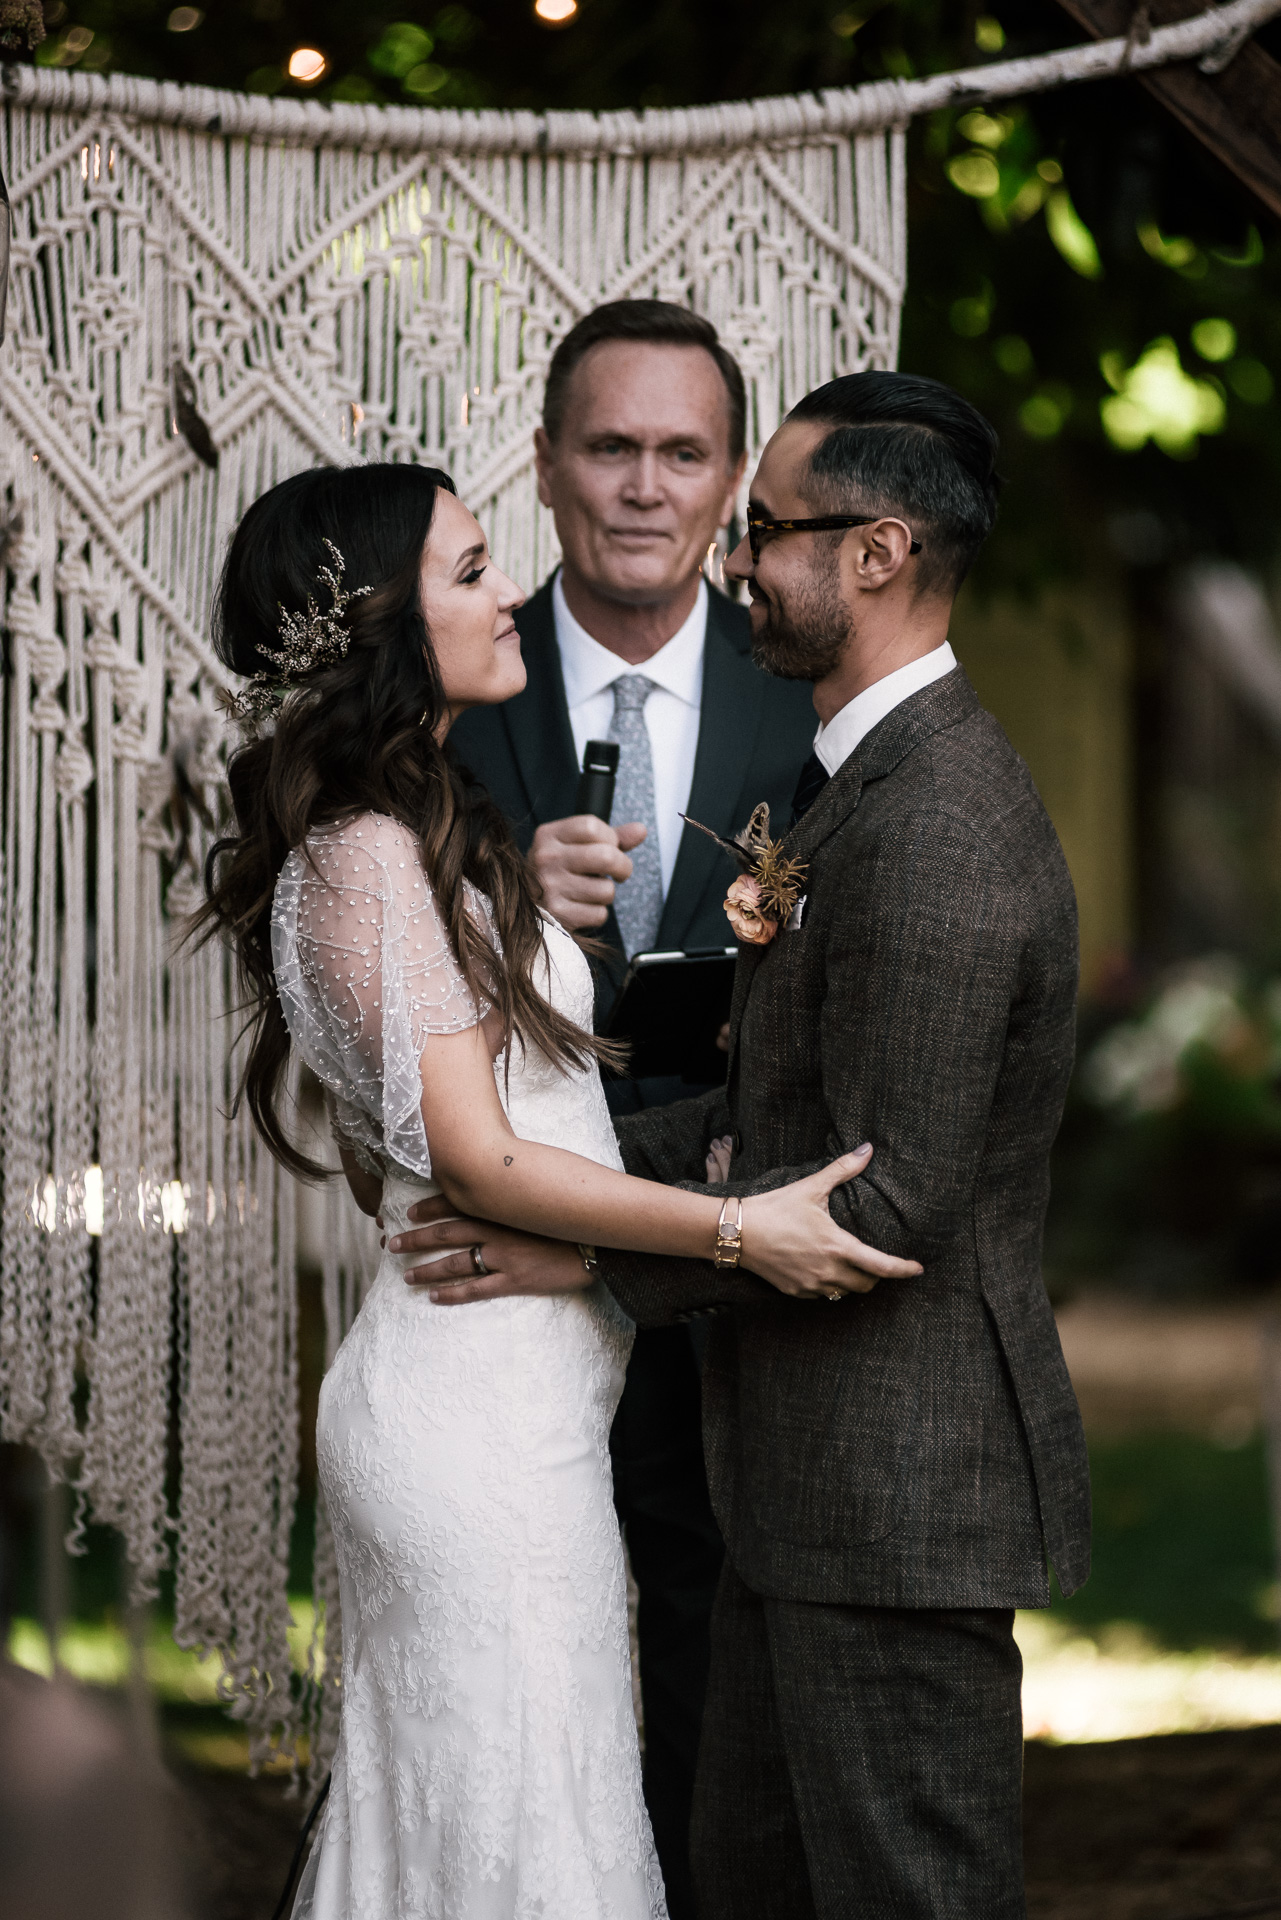 newly weds shot by wedding photographer at the charming St. George Hotel in Volcano California